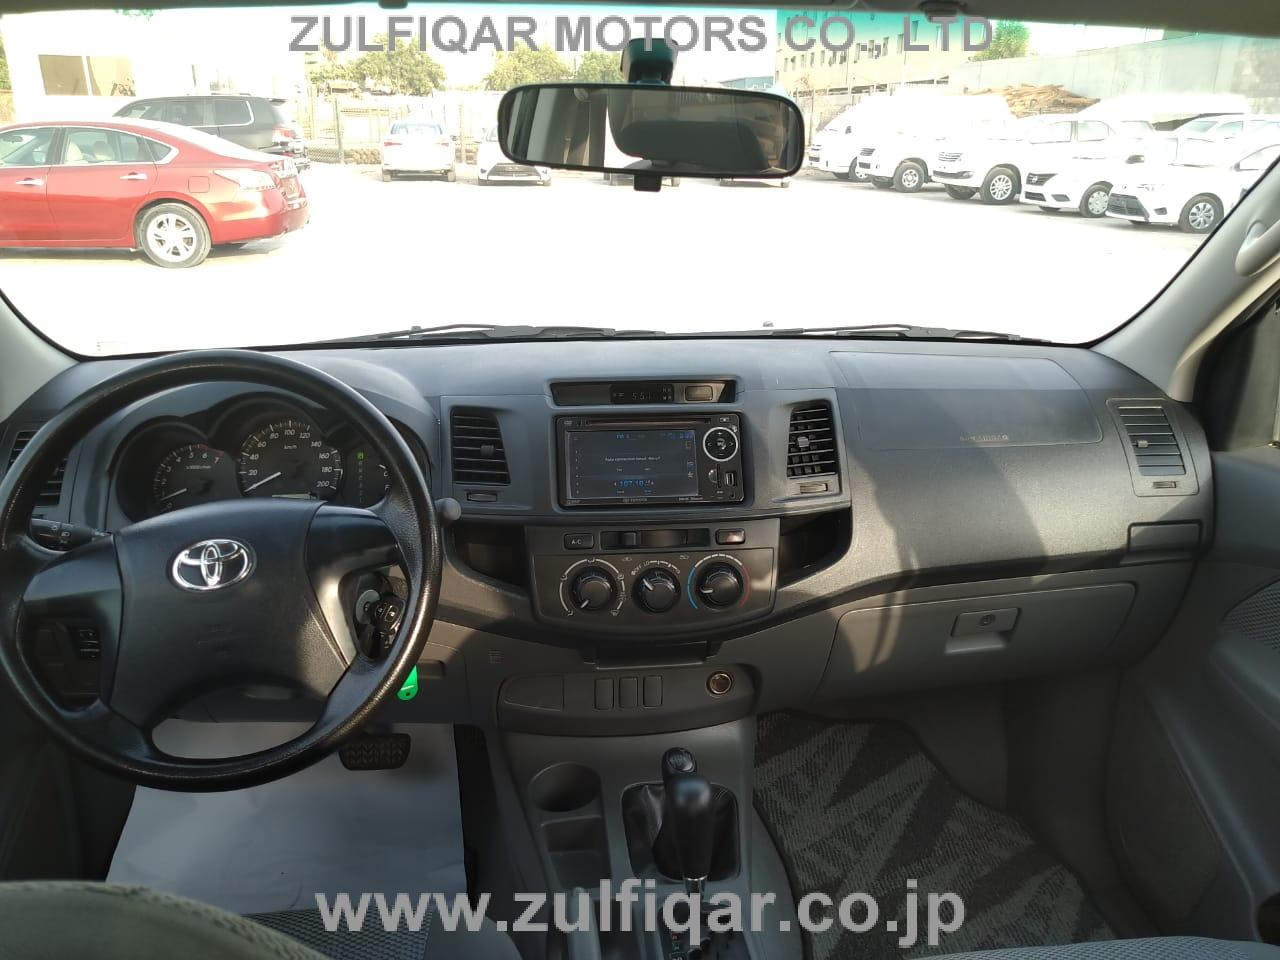 TOYOTA HILUX PICK UP 2015 Image 2